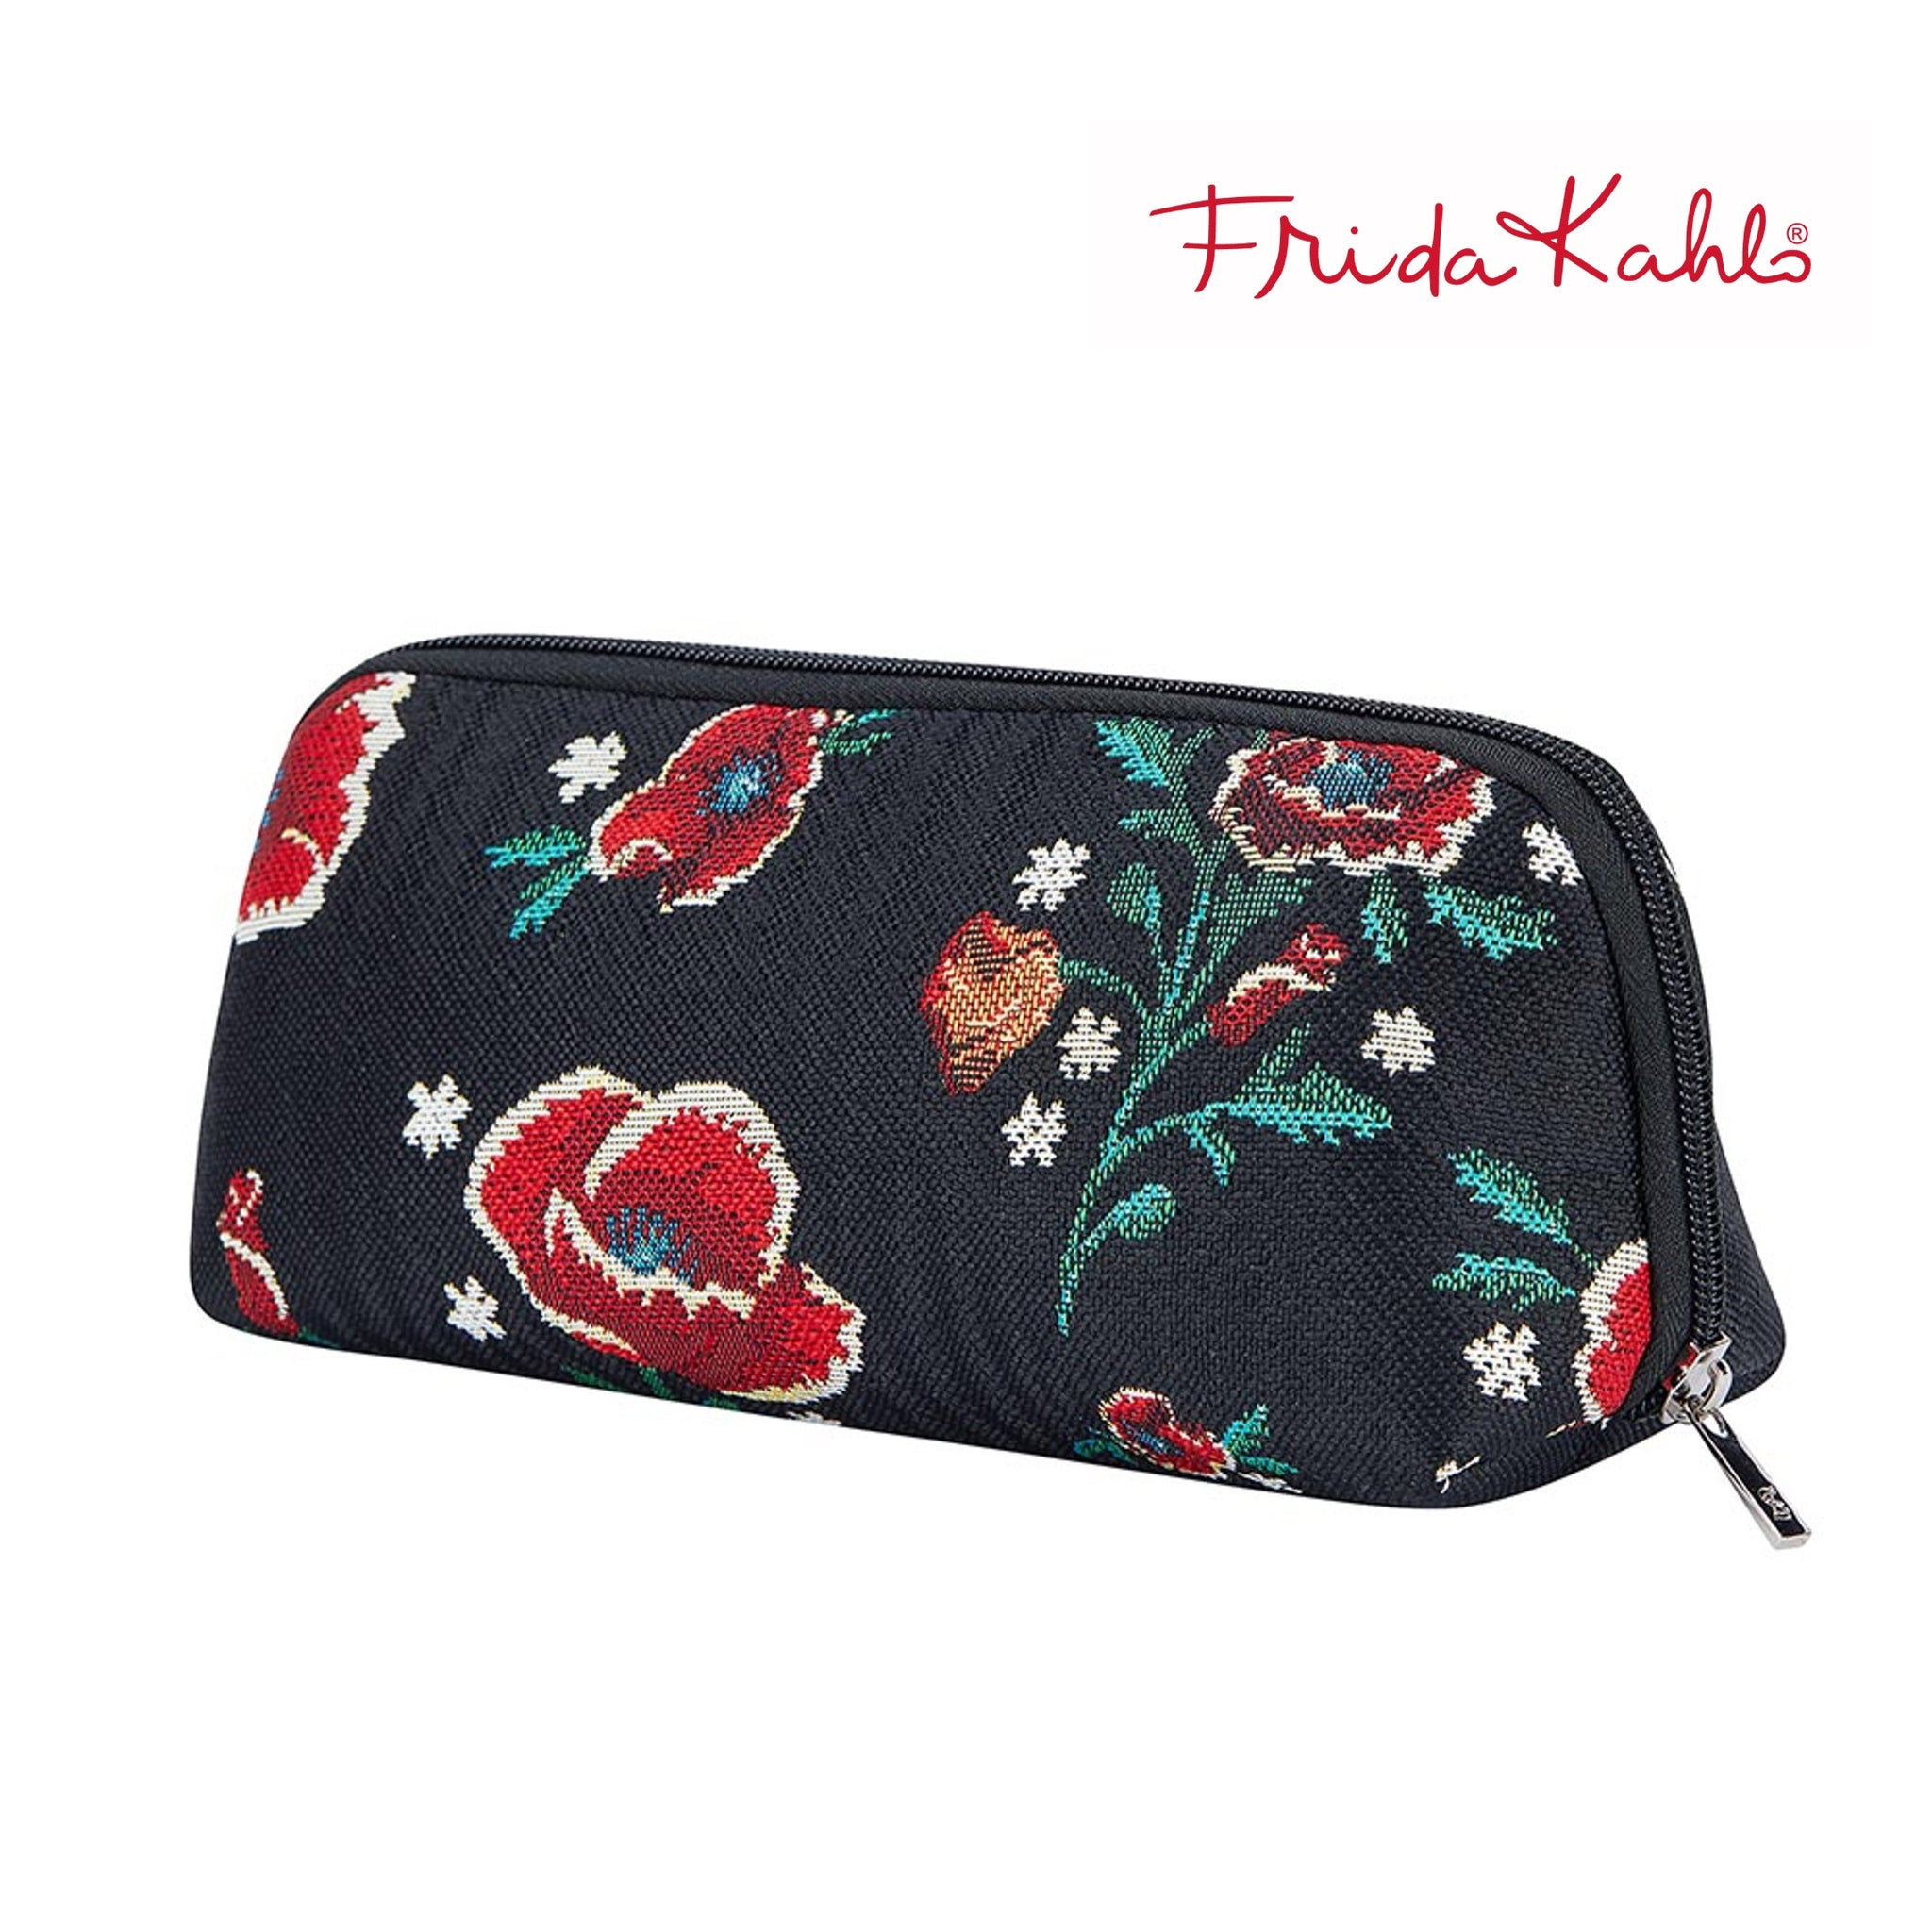 2021 S/S (New Arrival) Frida Kahlo Poppy Makeup Brush Bag | Floral Cosmetic Pouch | BRUBG-FKPOP